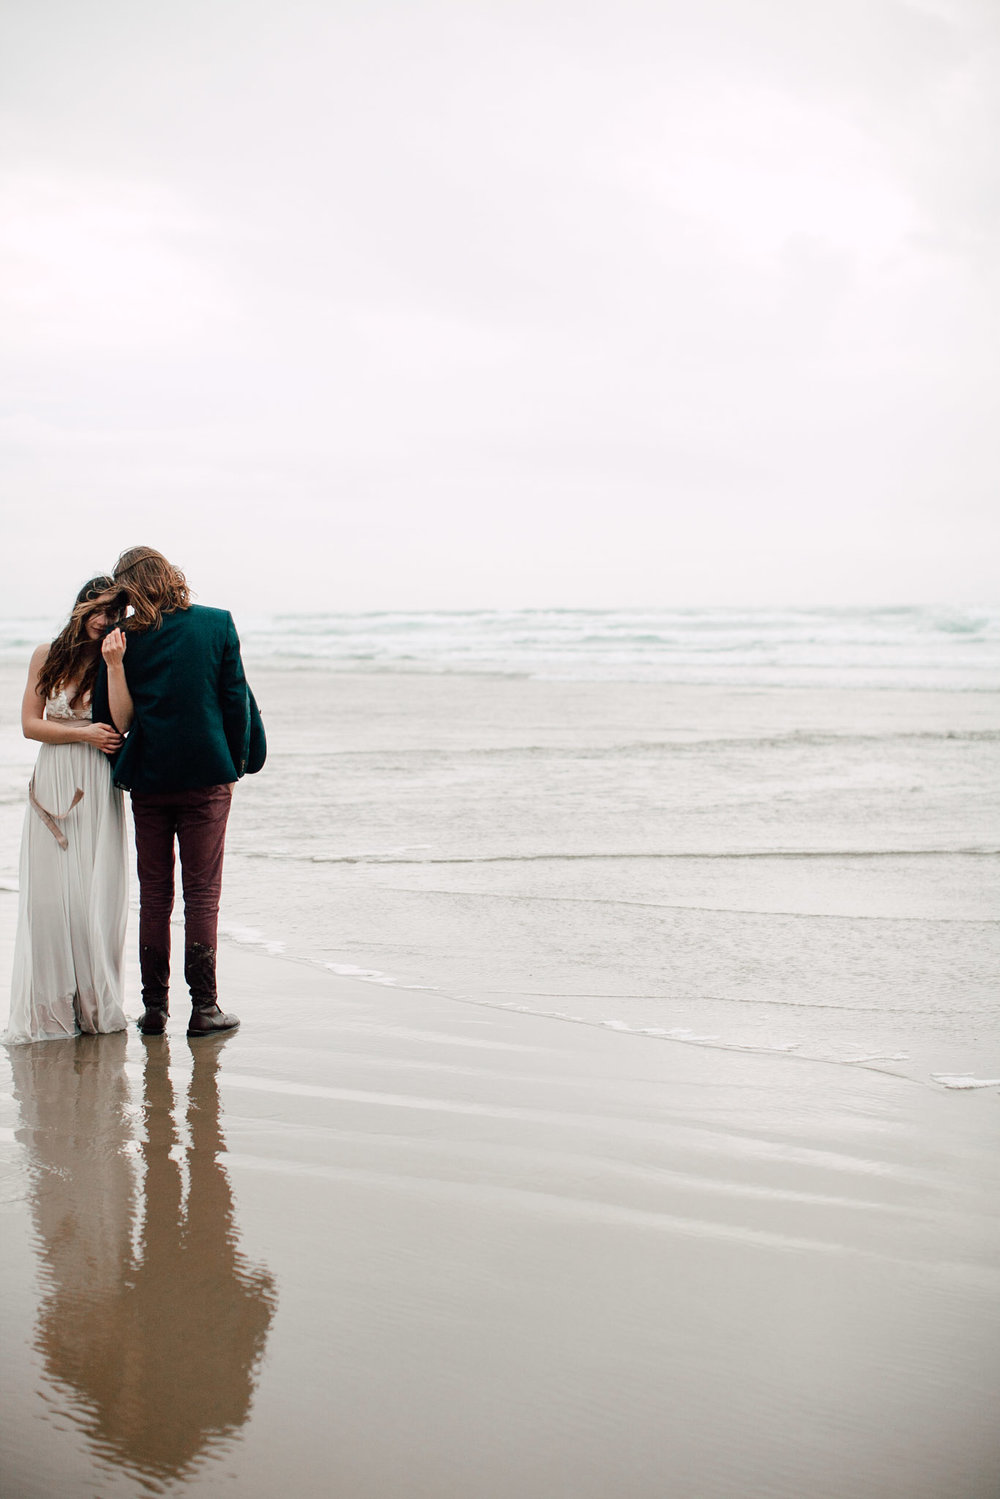 Oregon-Coast-Manzanita-Beach-Engagement-Pia-Anna-Christian-Wedding-Photography-PNW-GB-24.jpg